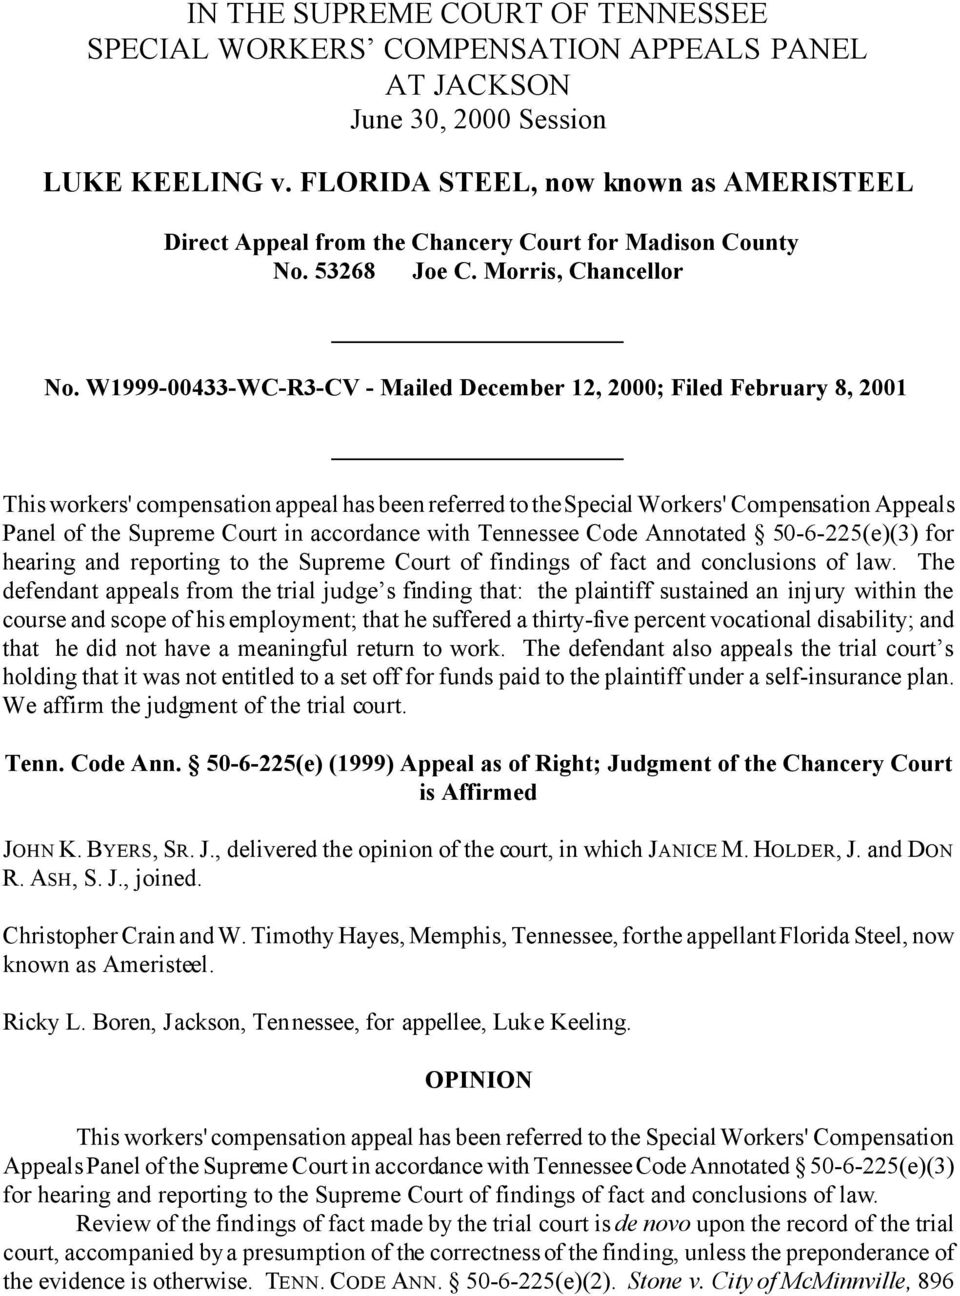 W1999-00433-WC-R3-CV - Mailed December 12, 2000; Filed February 8, 2001 This workers' compensation appeal has been referred to the Special Workers' Compensation Appeals Panel of the Supreme Court in